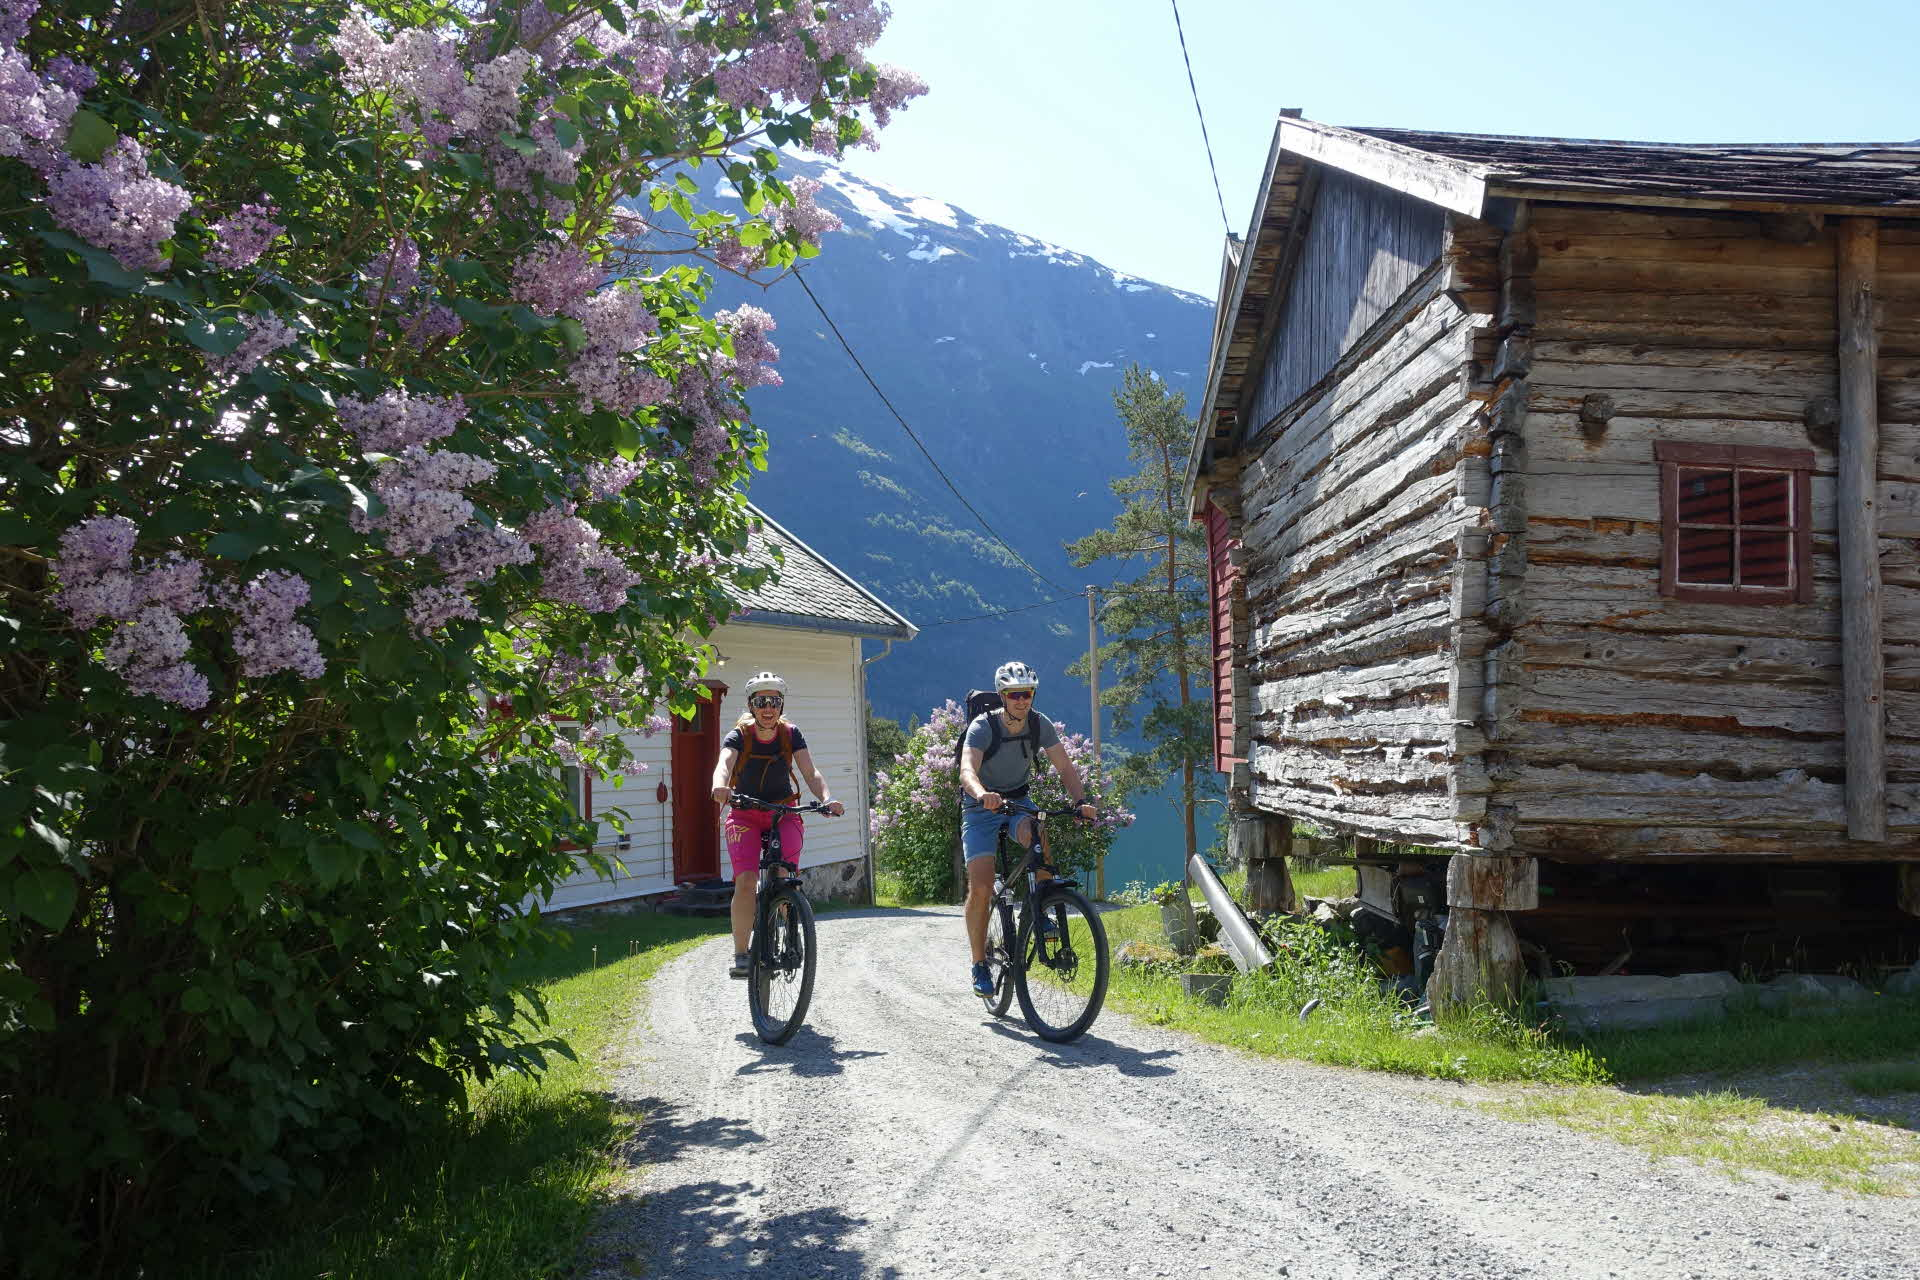 Two cyclists on the gravel track in Dyrdal, standing next to blossoming lilac